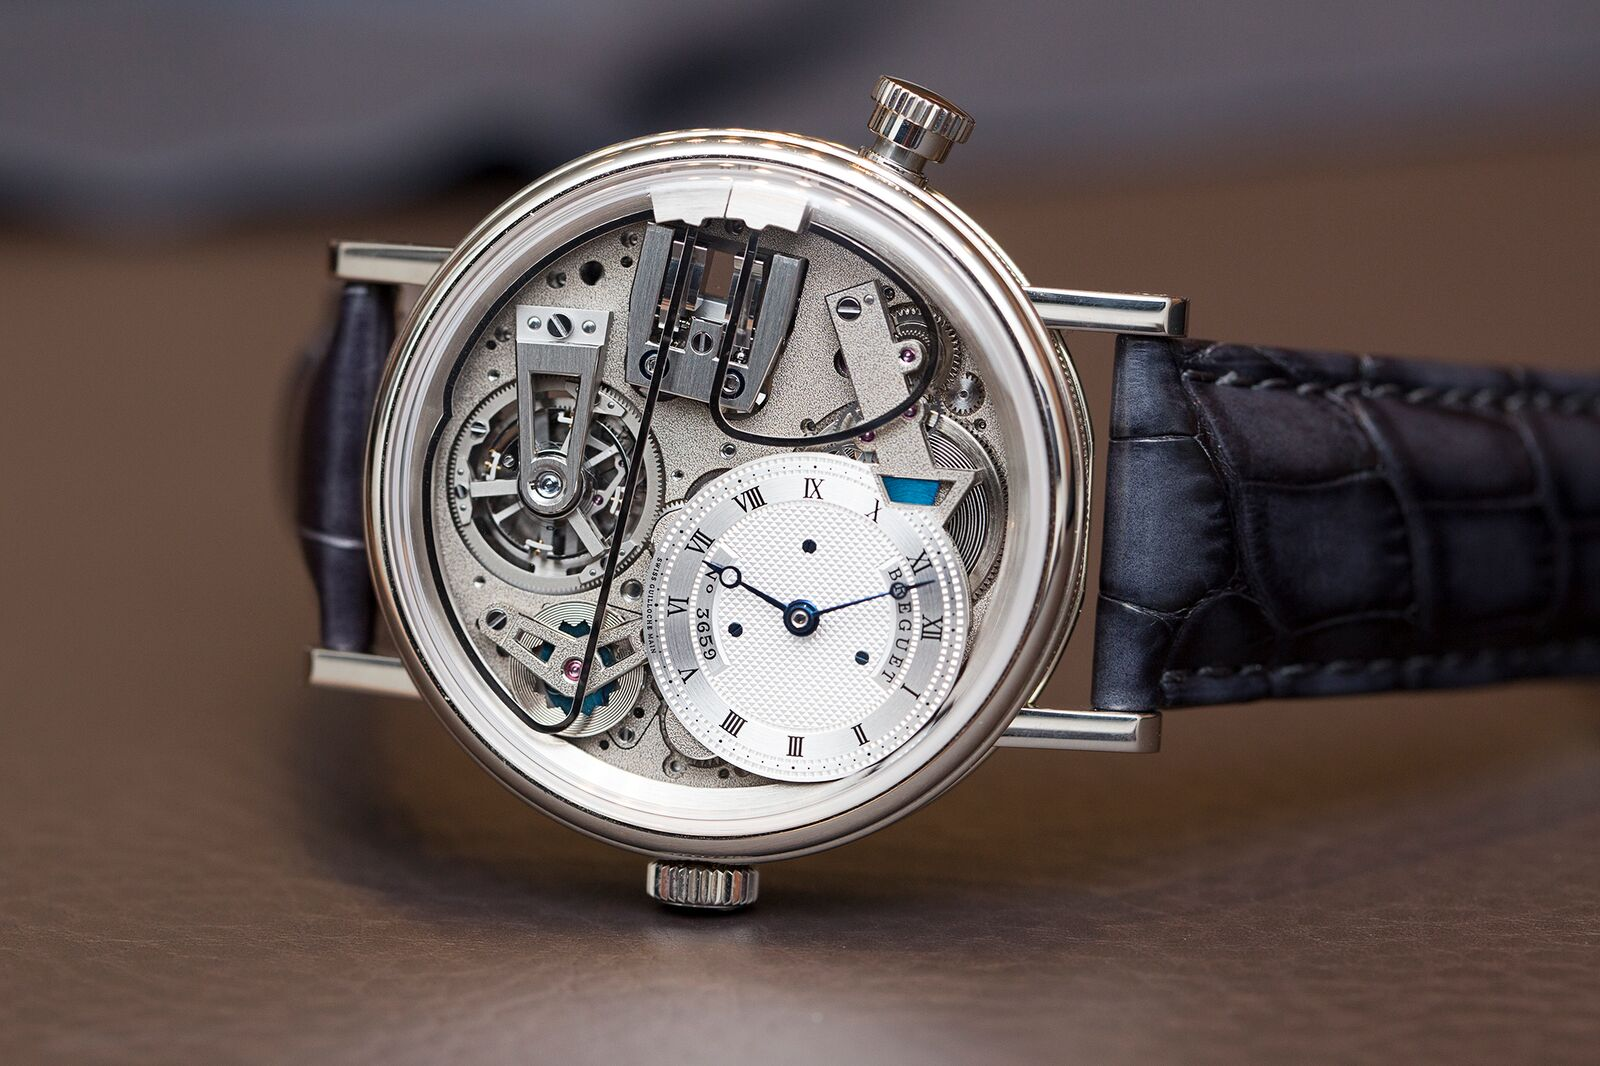 To create a better performing governor Breguet developed one that utilizes magnetism and put it in this stunning Tradition 7078 Minute Repeater Tourbillon. The wire gongs are the two metal wires that start at the three o'clock position and curve around on the front of the watch.